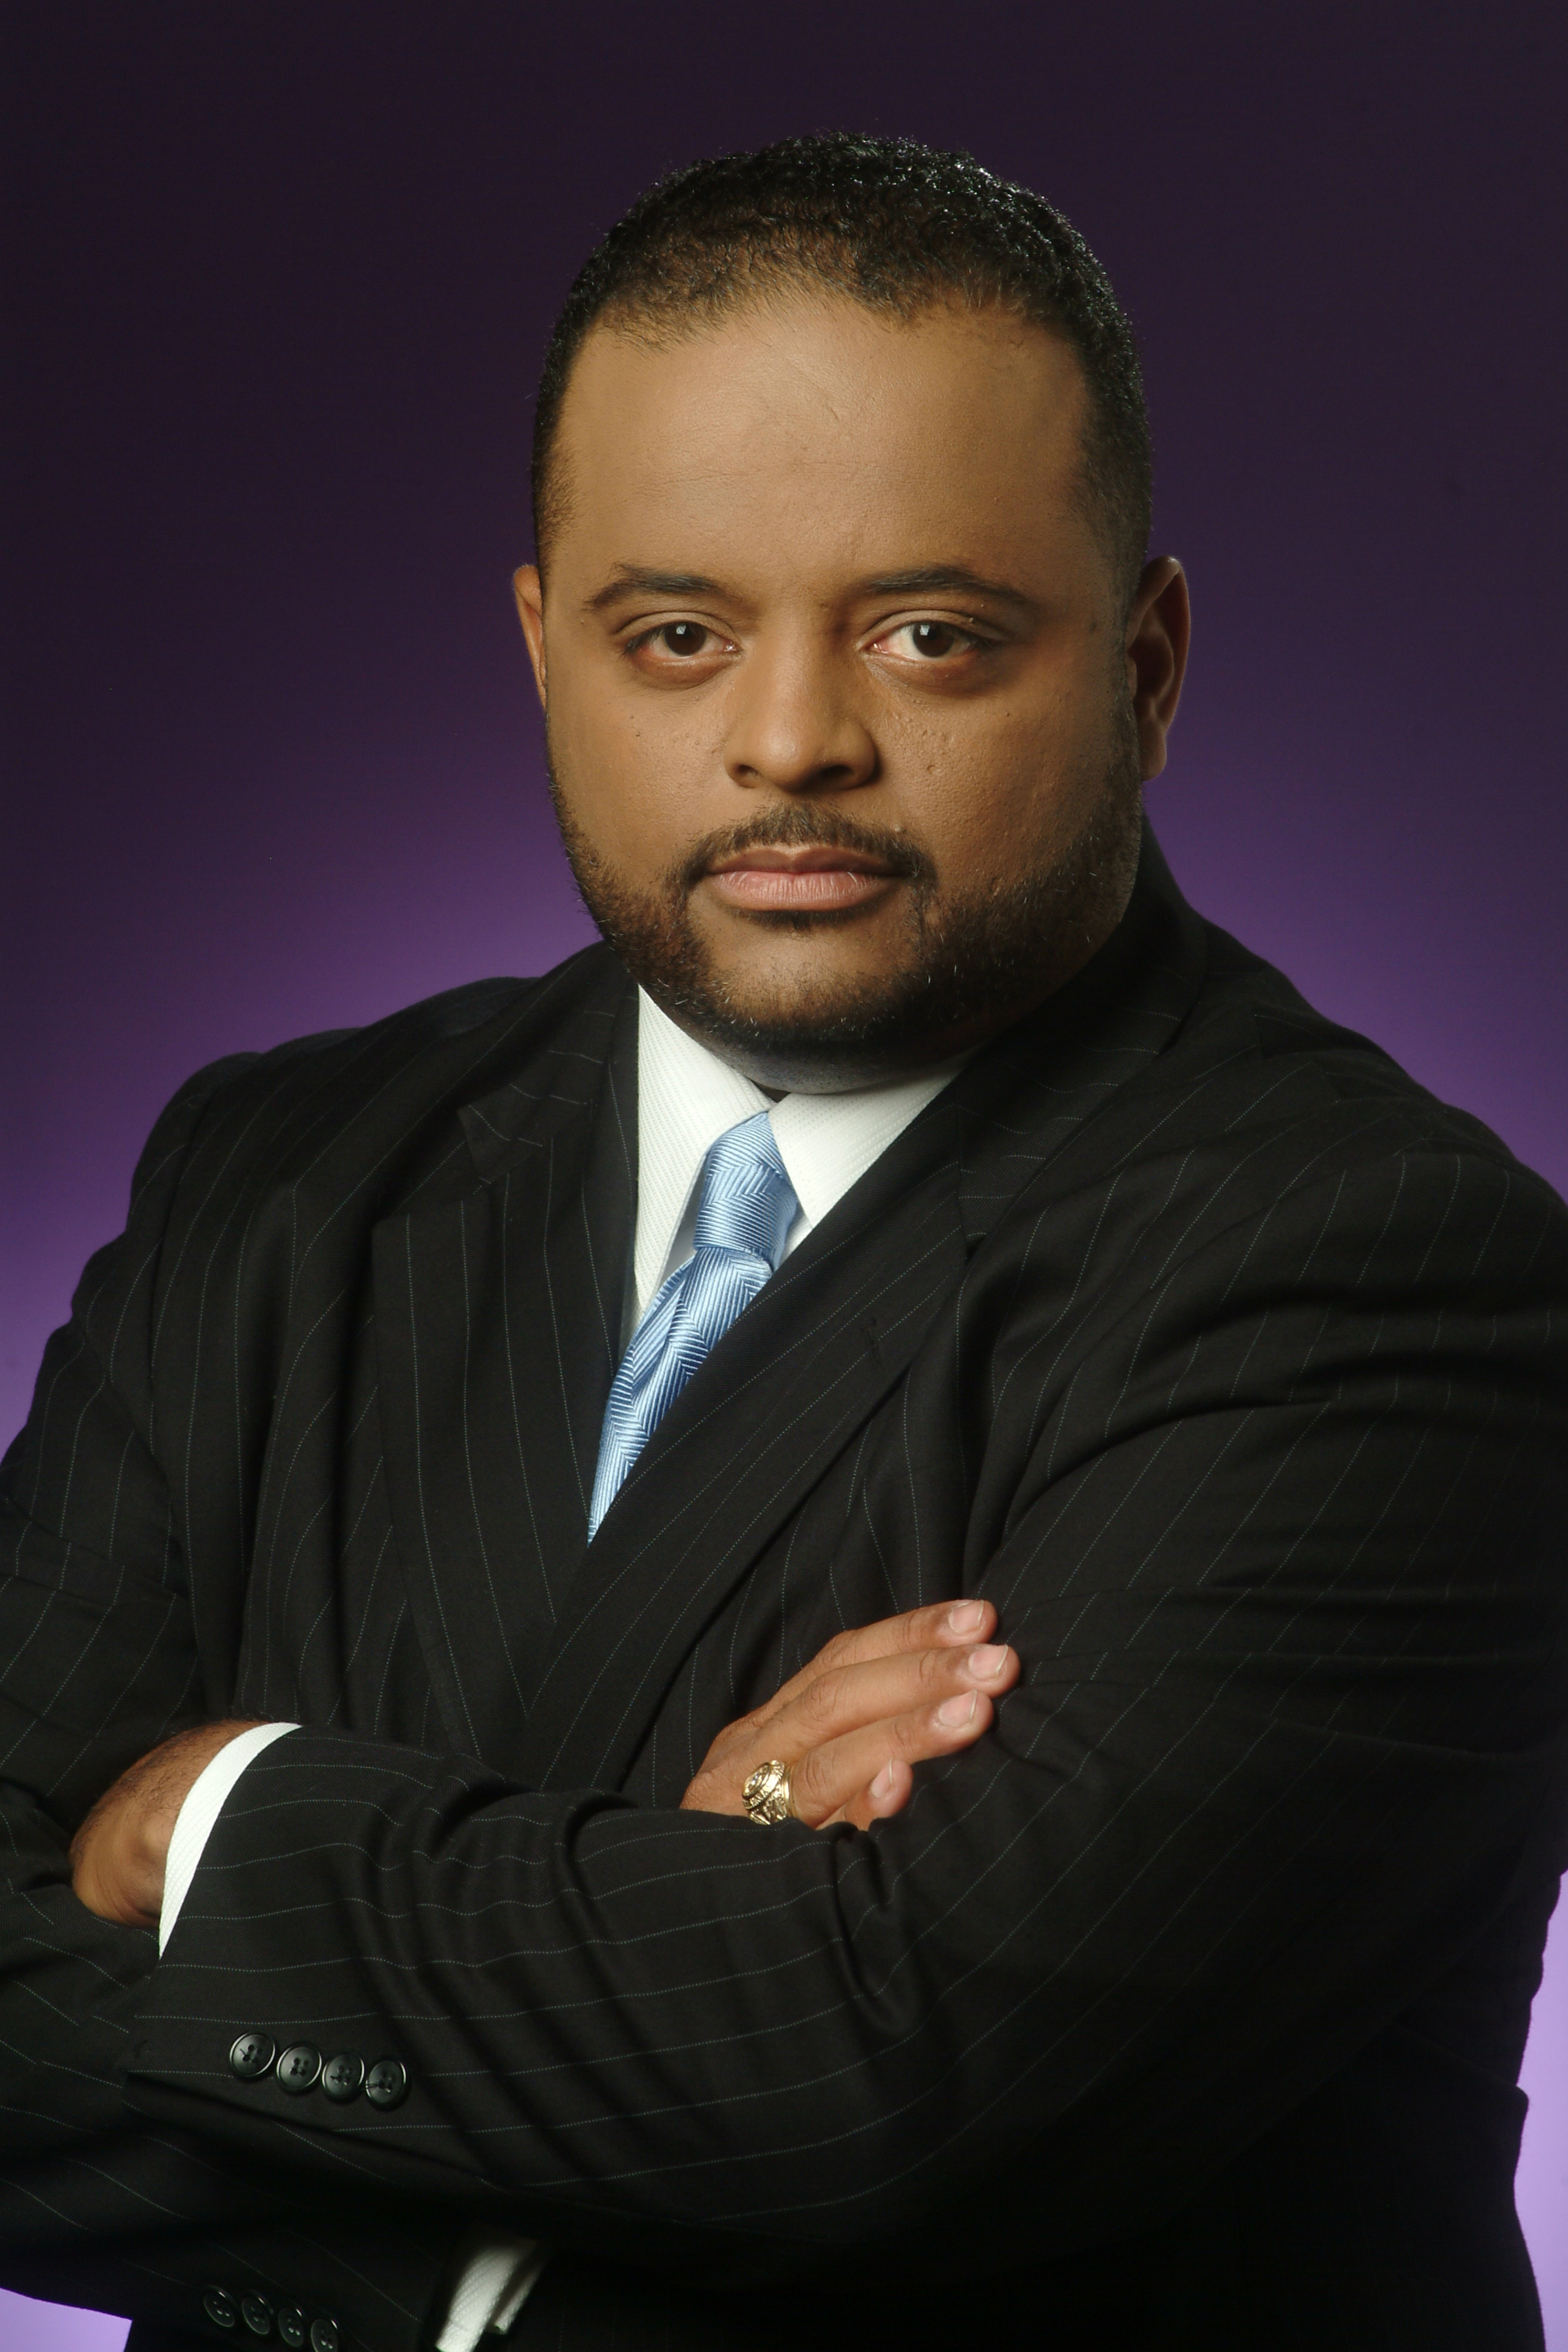 cnn u0026 39 s roland martin   u0026 39 you u0026 39 re going to get fired from every